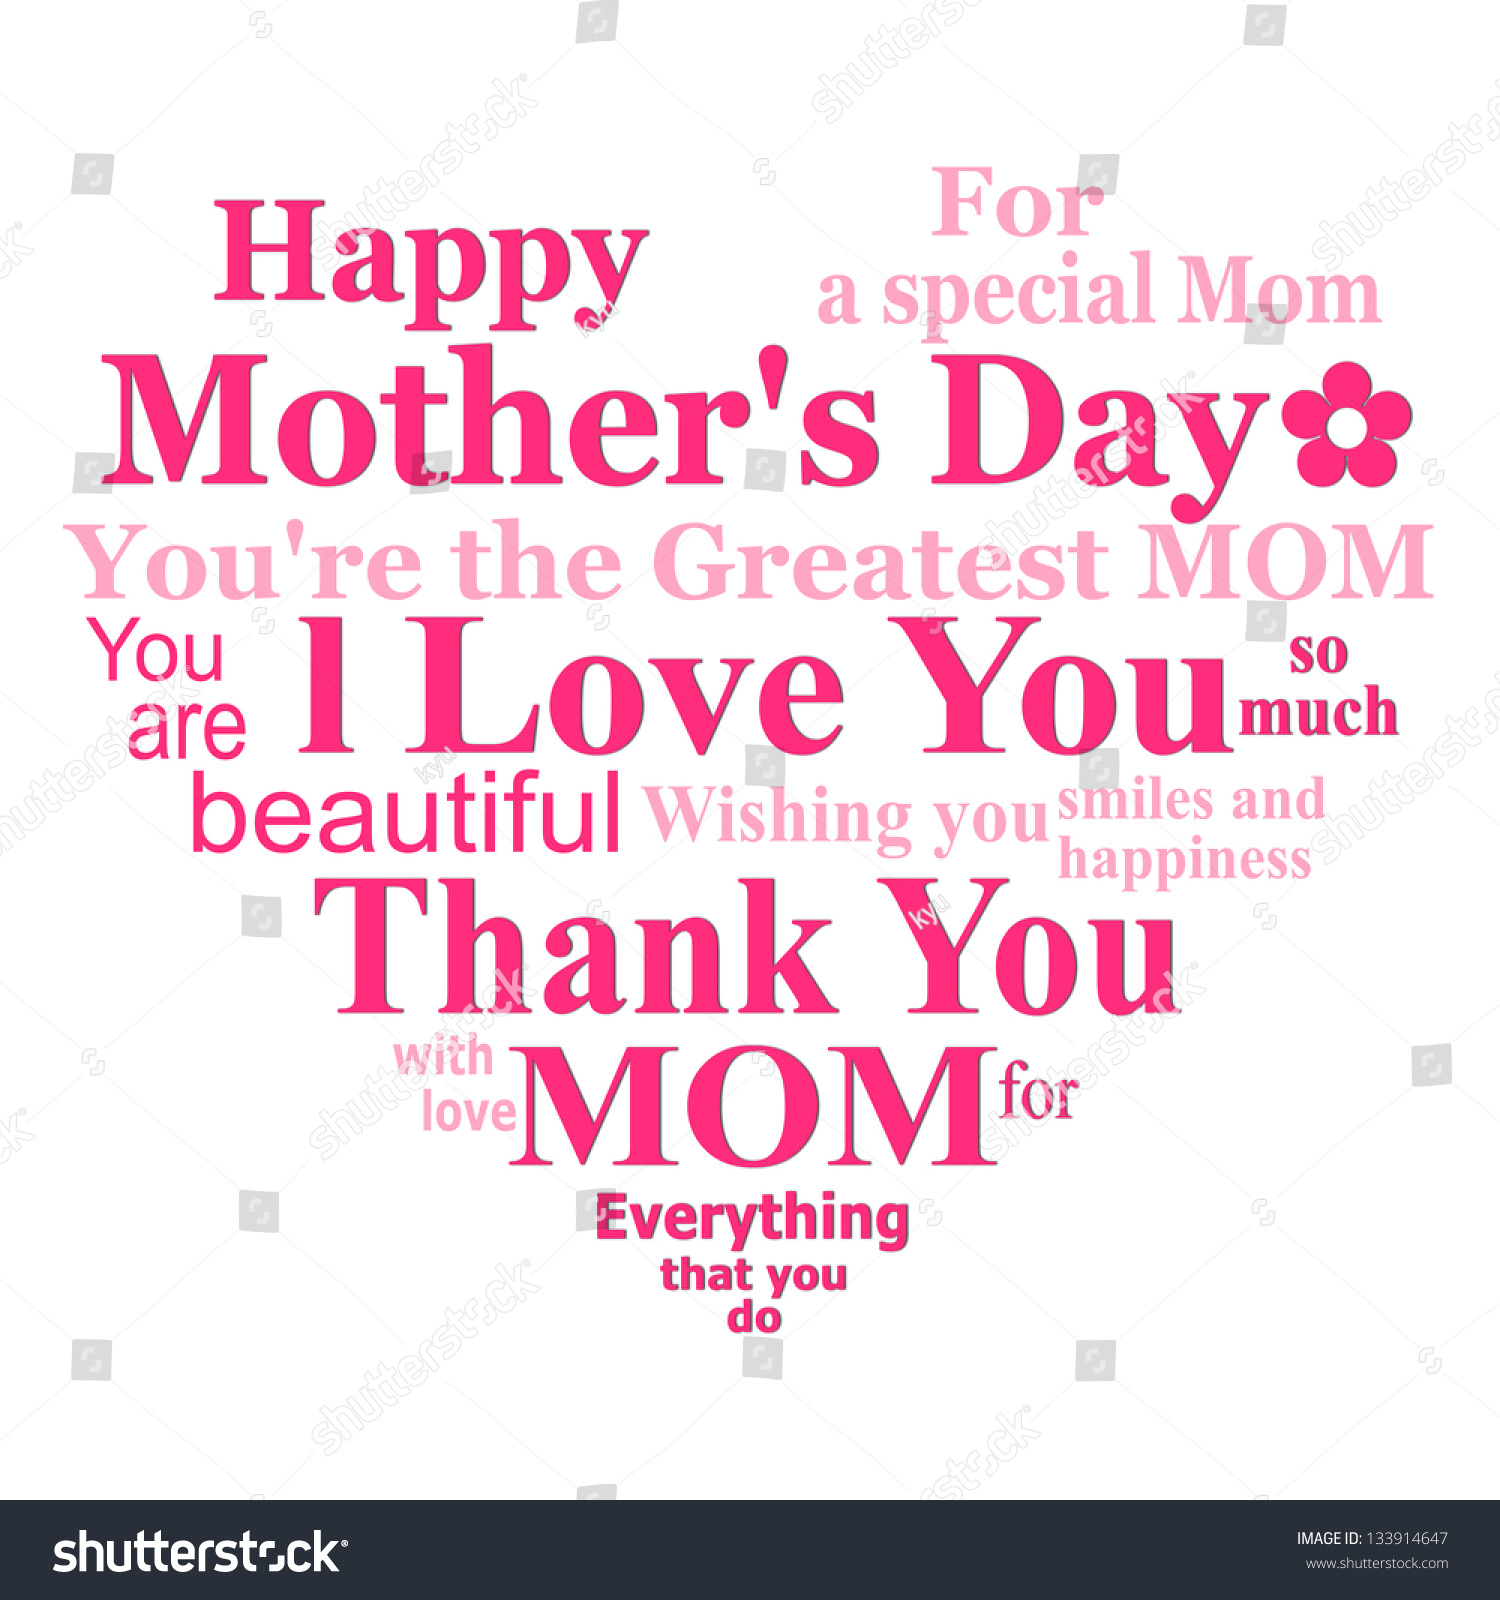 Happy Mothers Day Card Design On White Background